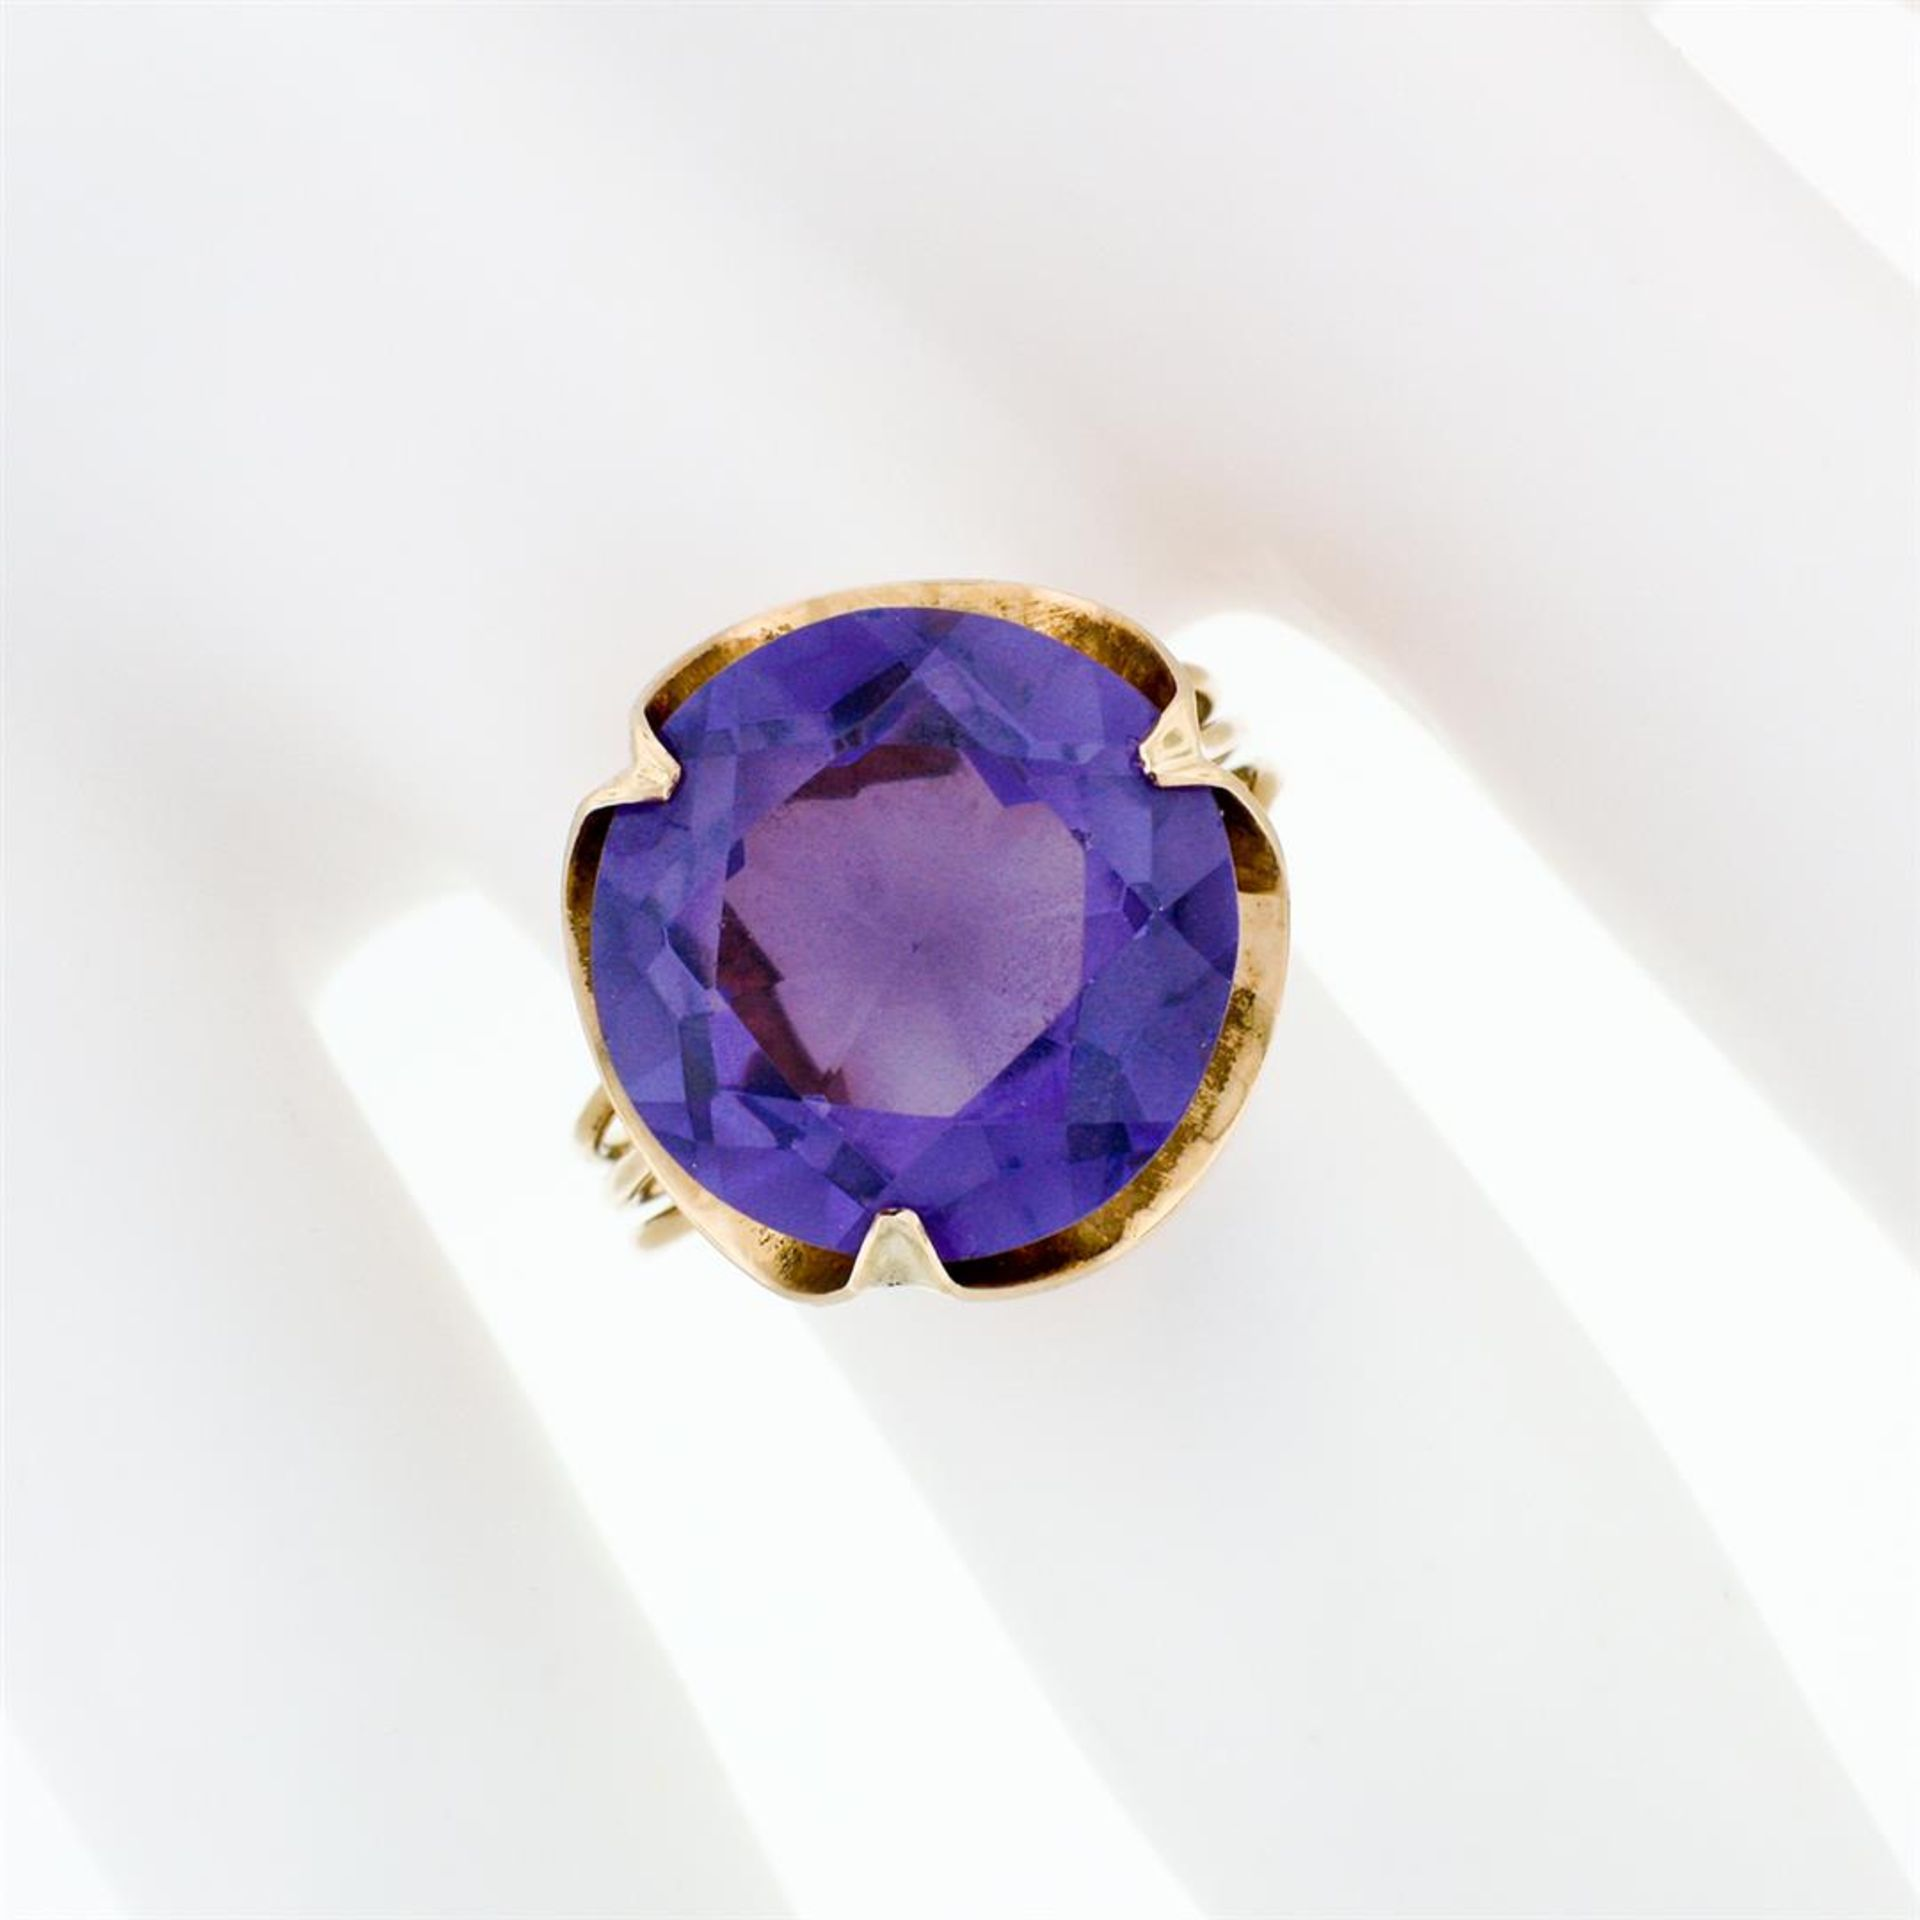 Retro Vintage Handmade 14k Rose Gold 13.7mm Synthetic Alexandrite Solitaire Ring - Image 3 of 8